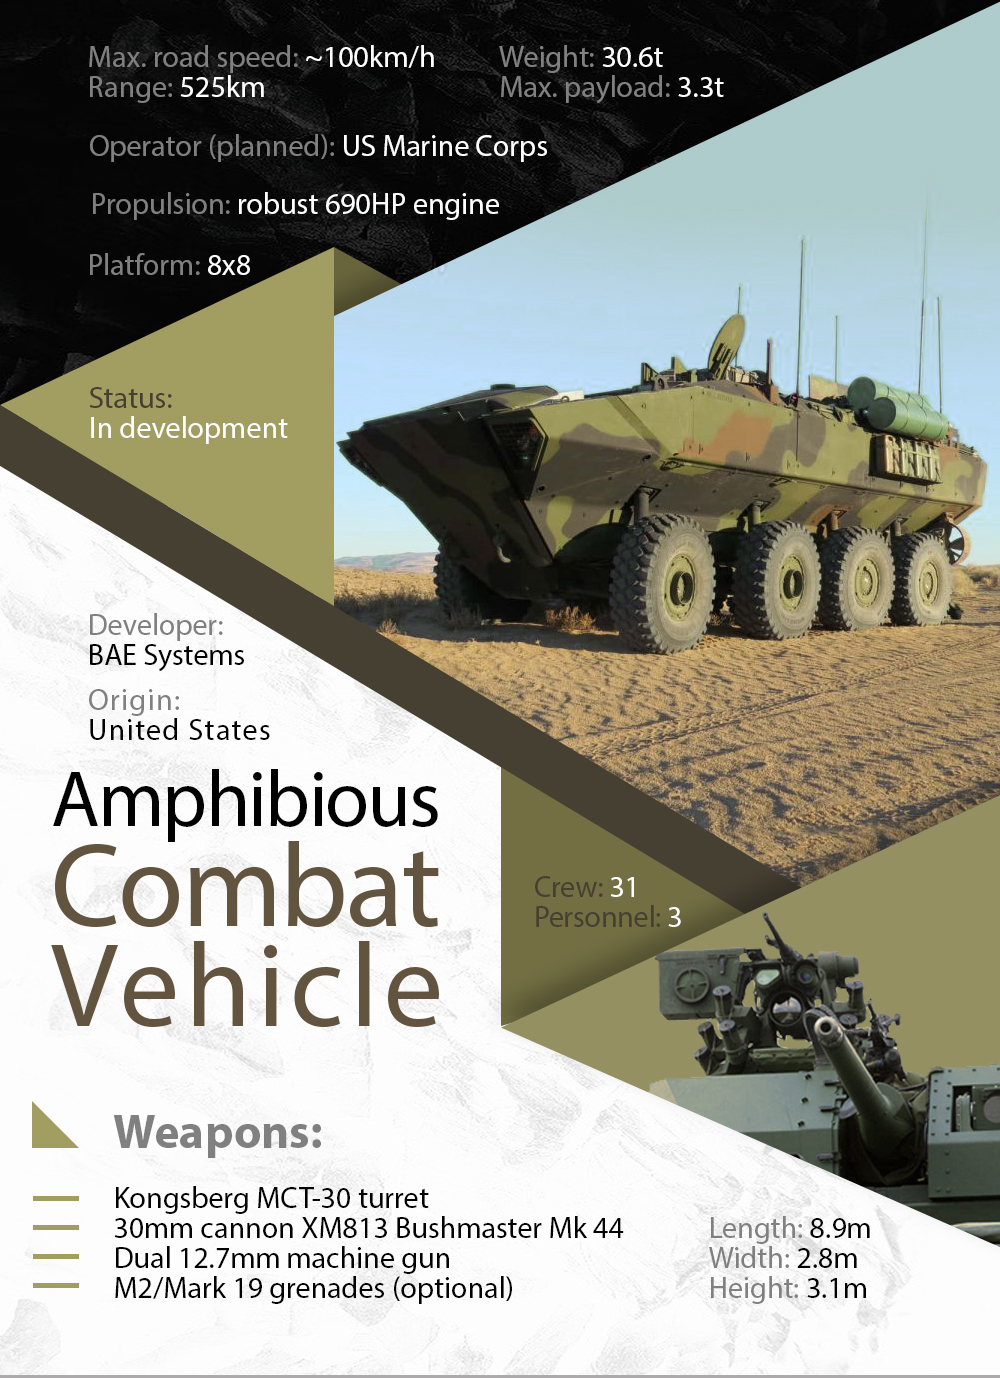 US Marine Corps' Amphibious Combat Vehicle Will Get Kongsberg's Medium Caliber Turret (Infographic)